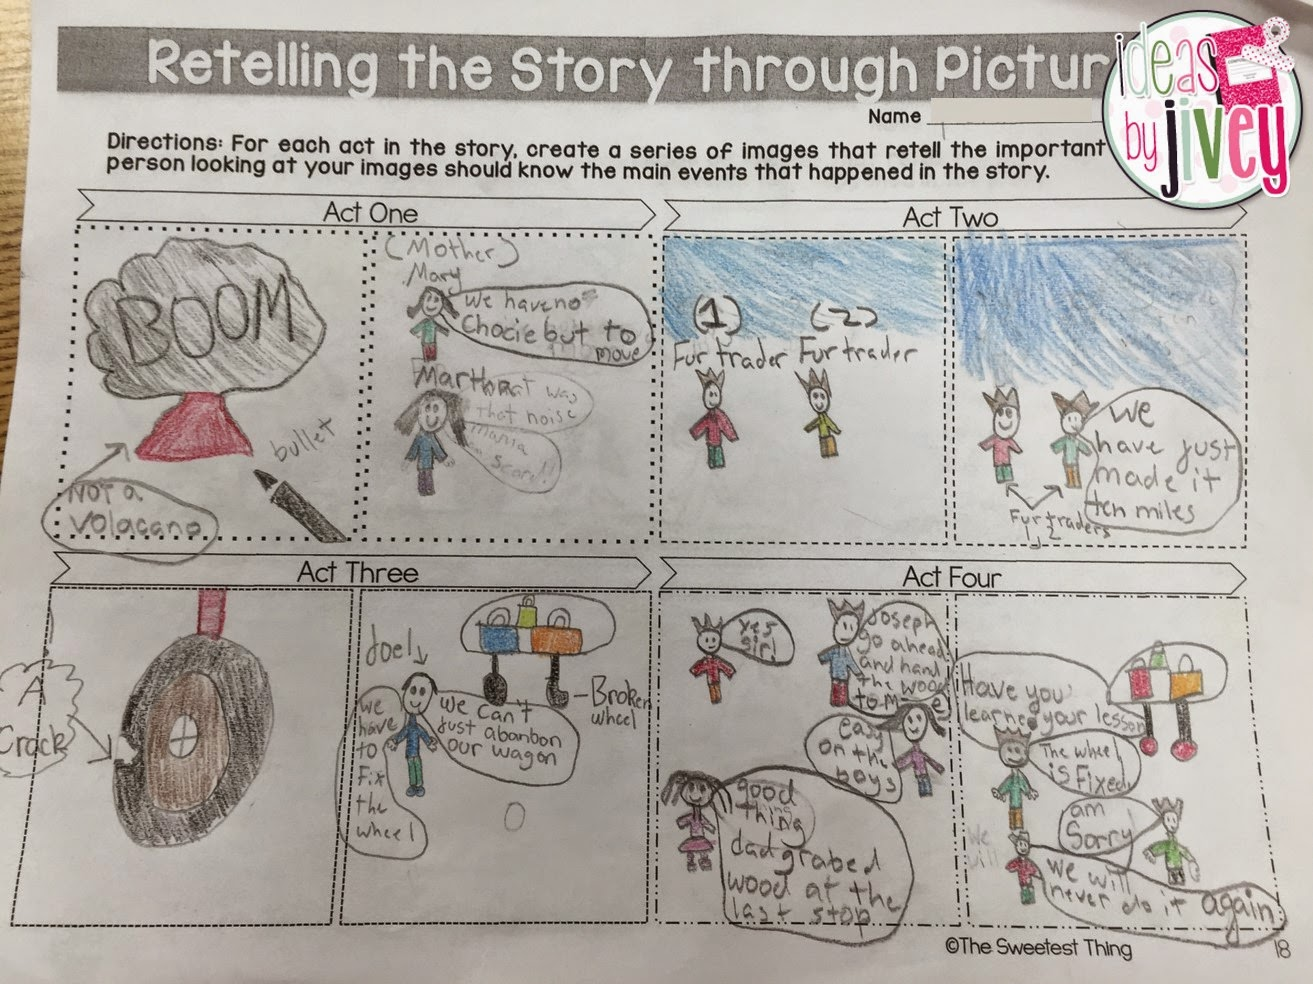 Retelling the story through Pictures by Ideas with Jivey